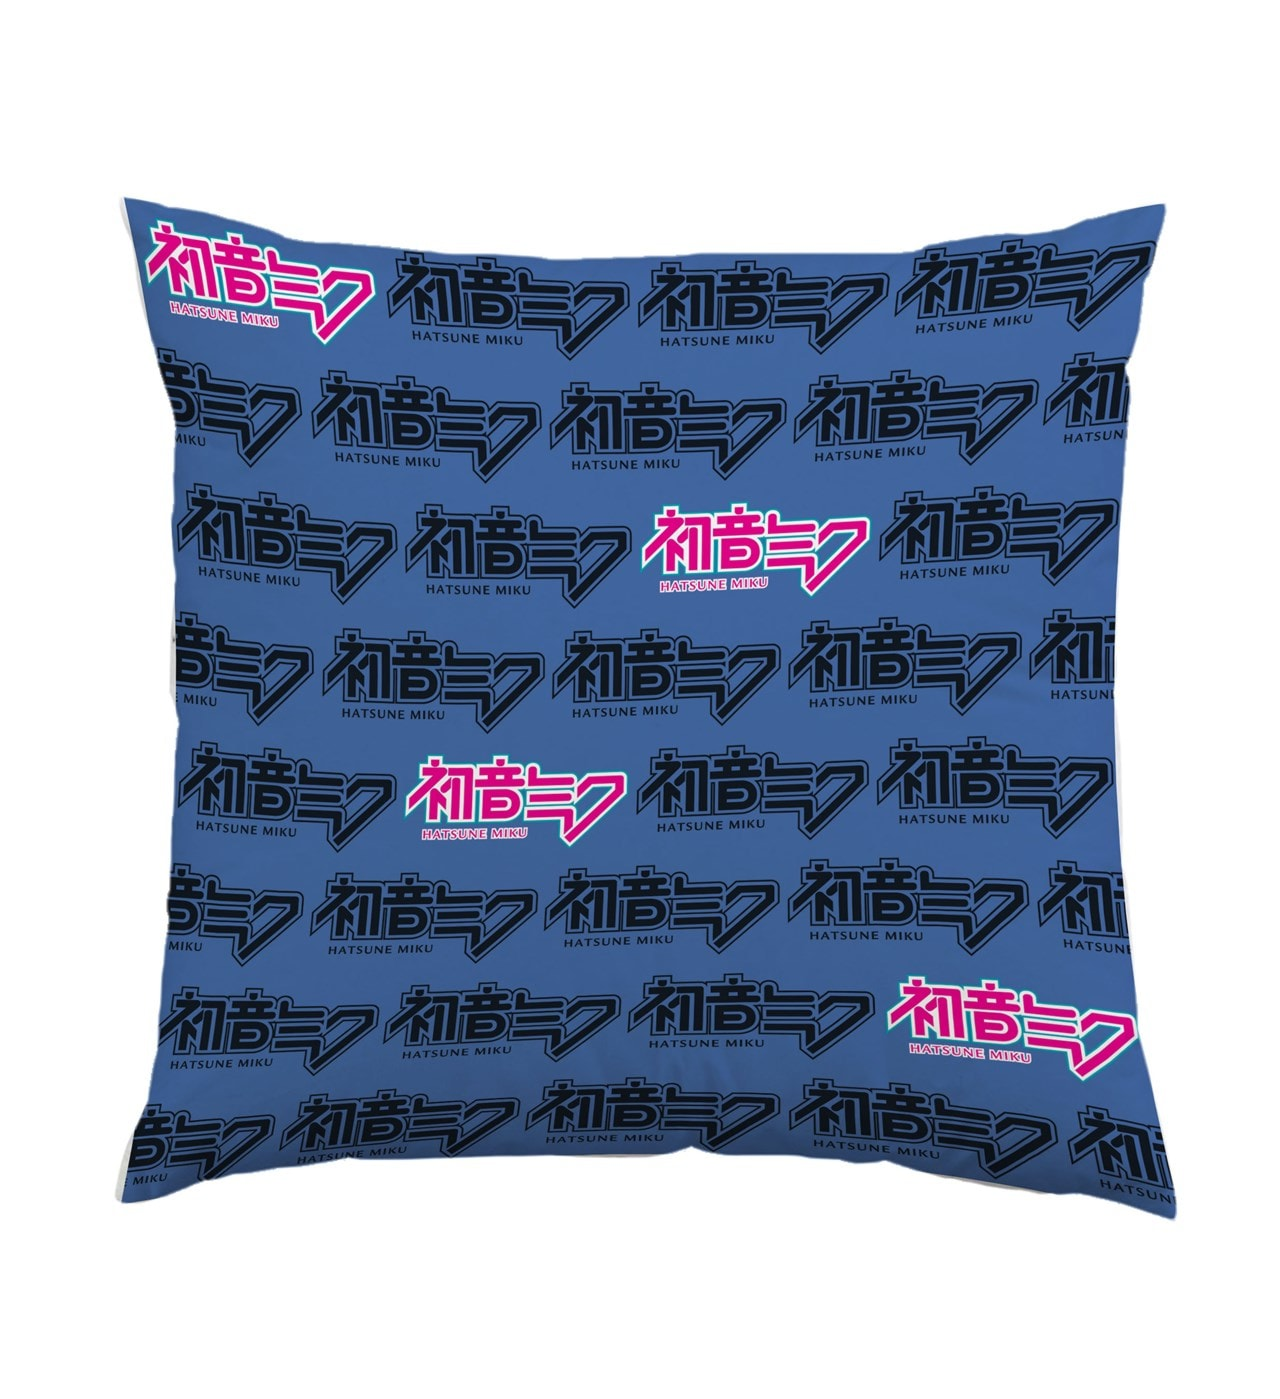 Hatsune Miku Cushion - 2